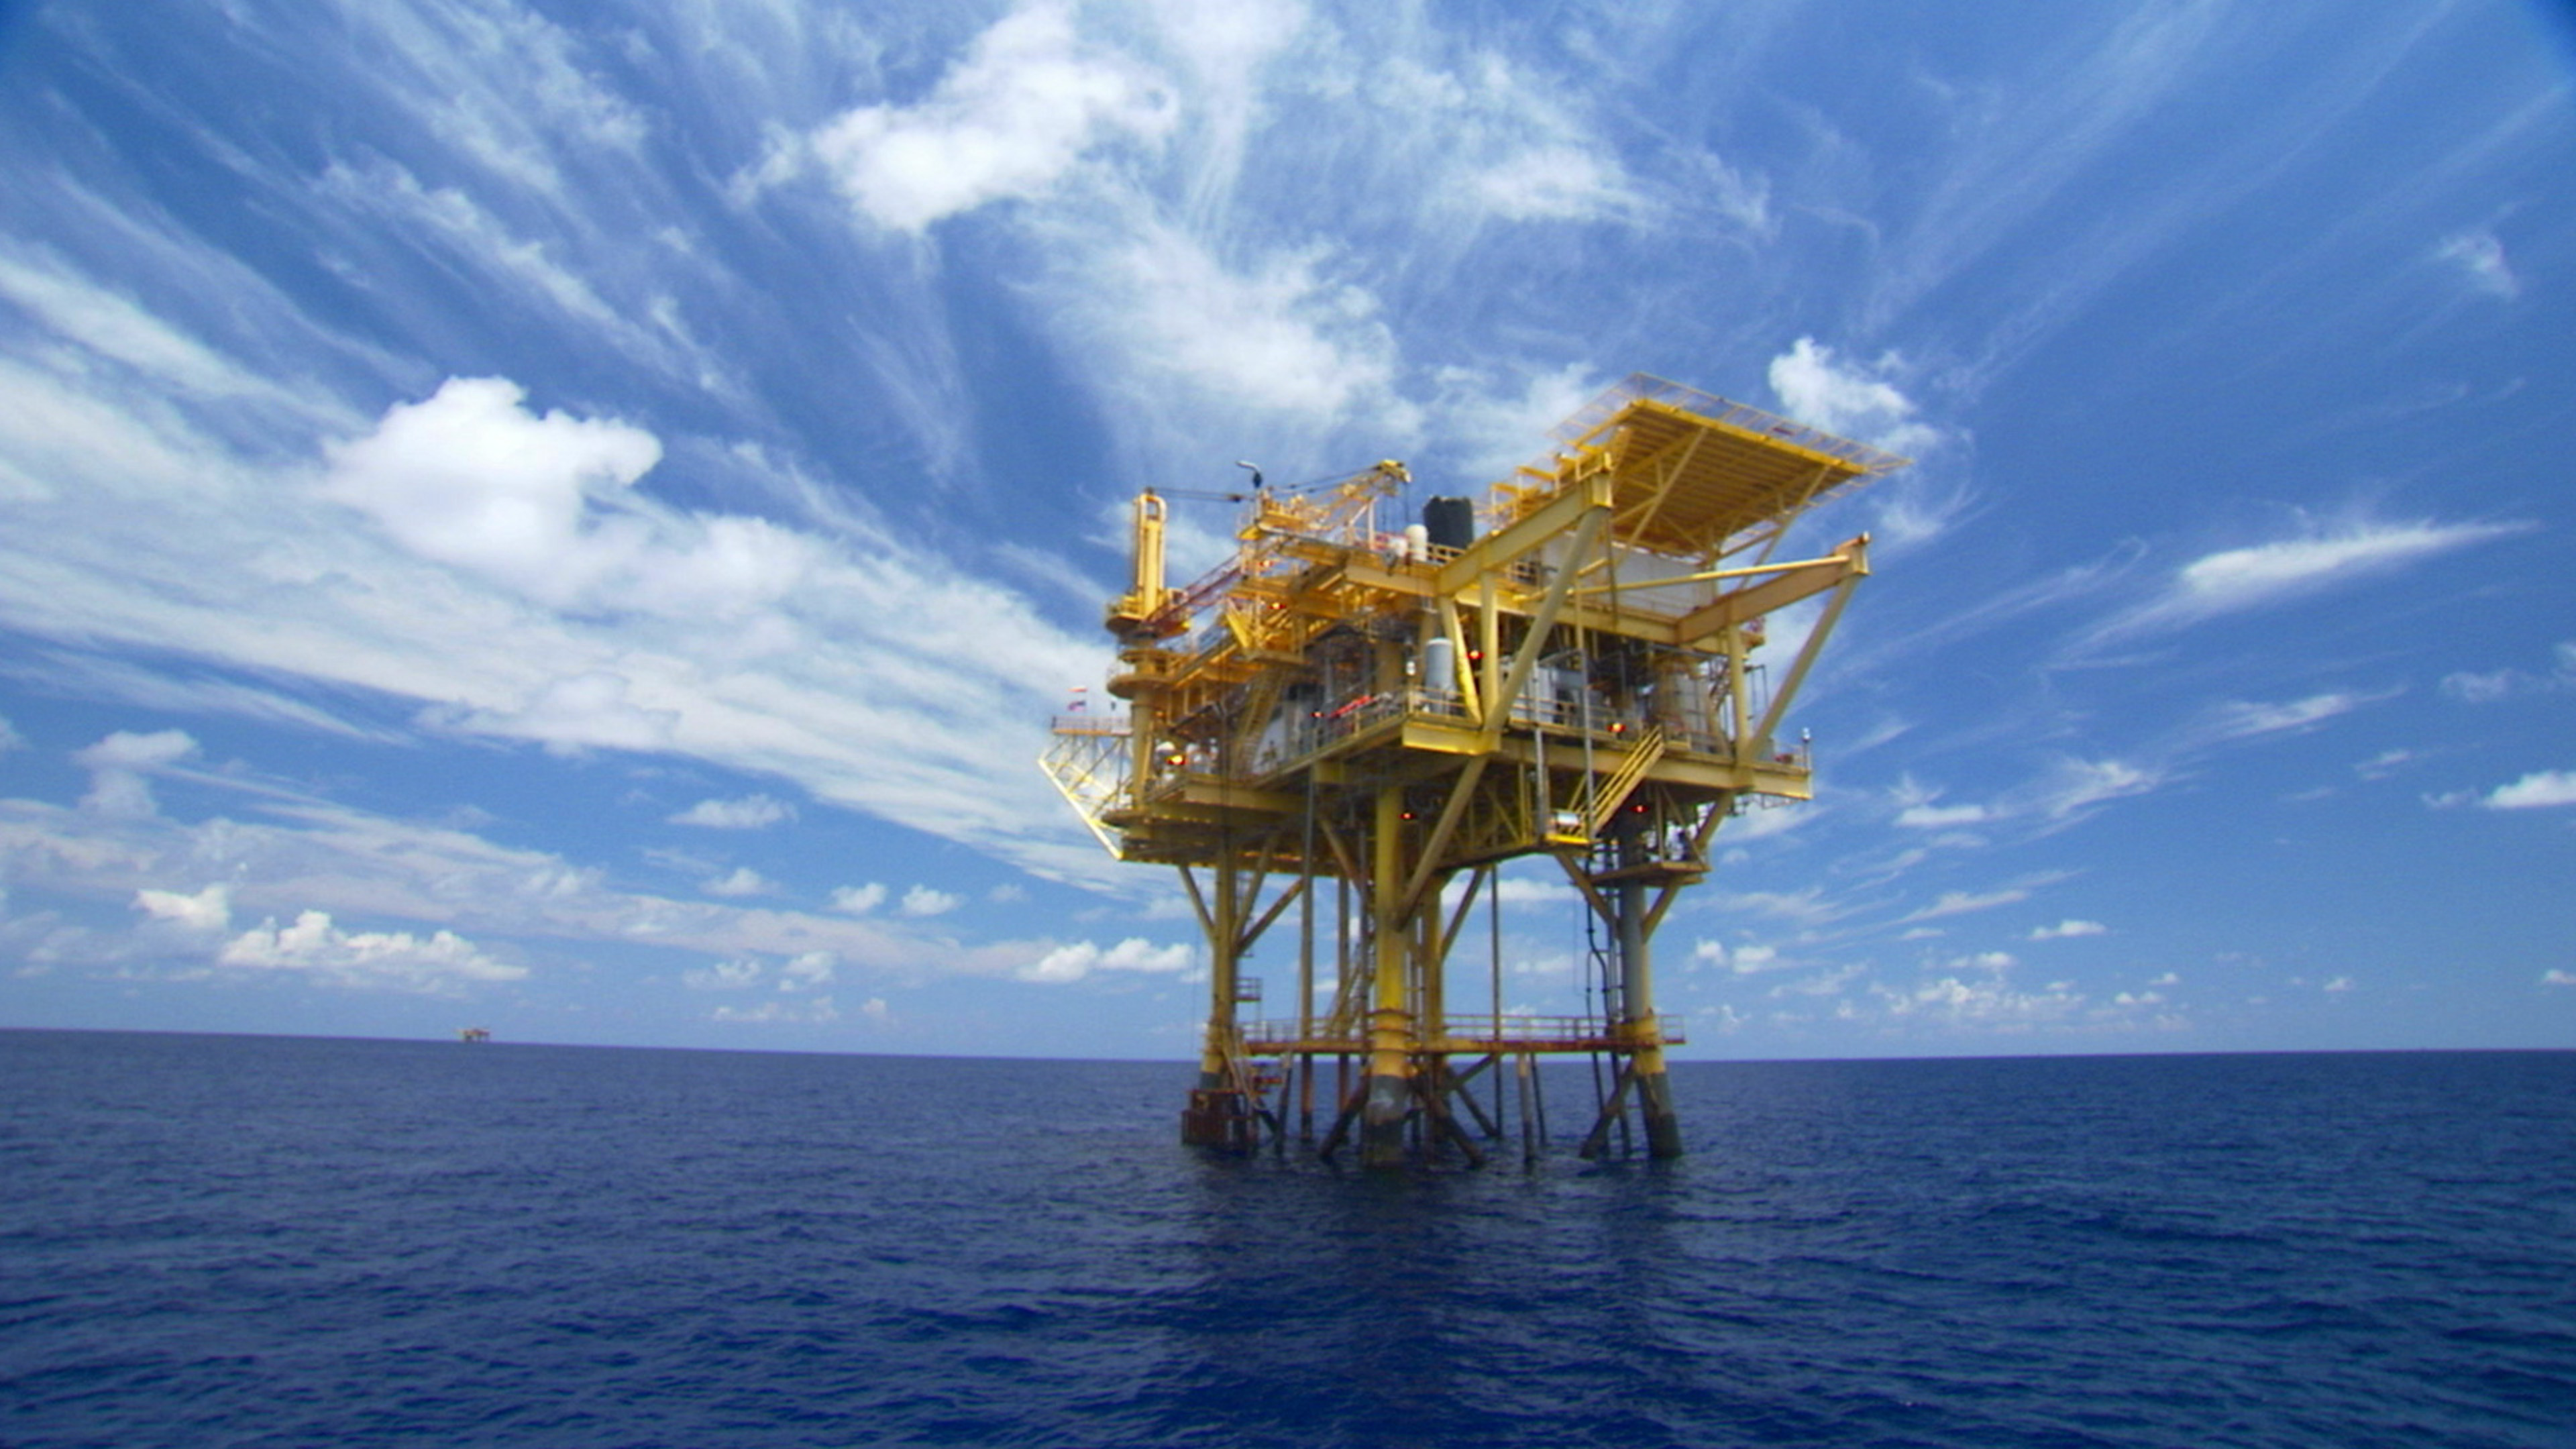 Oil rig gas platforms offshore Gulf of Mexico